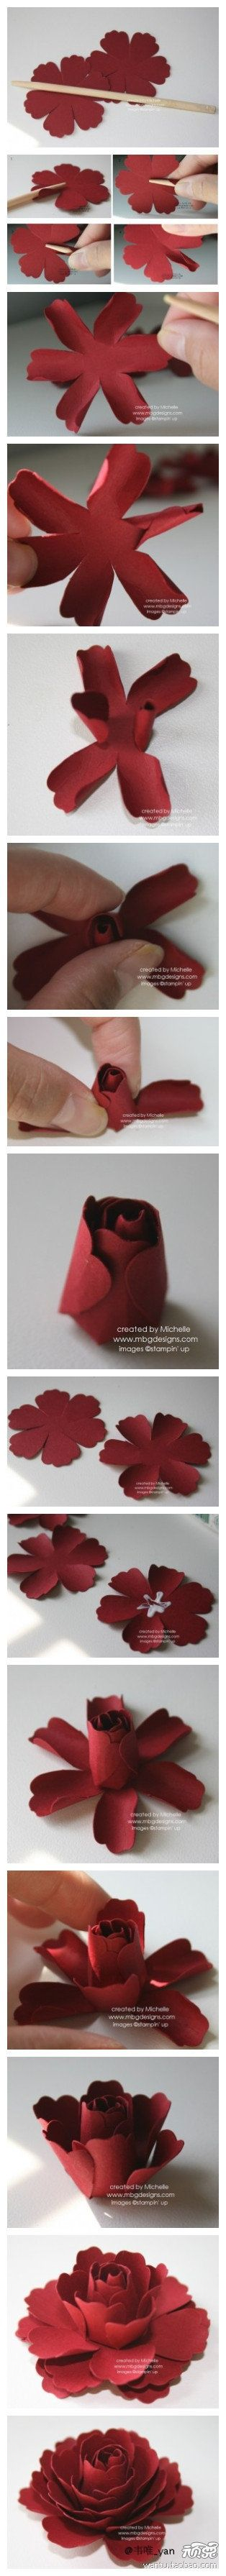 Inspirational Monday Do It Yourself Diy Flower Series Paper